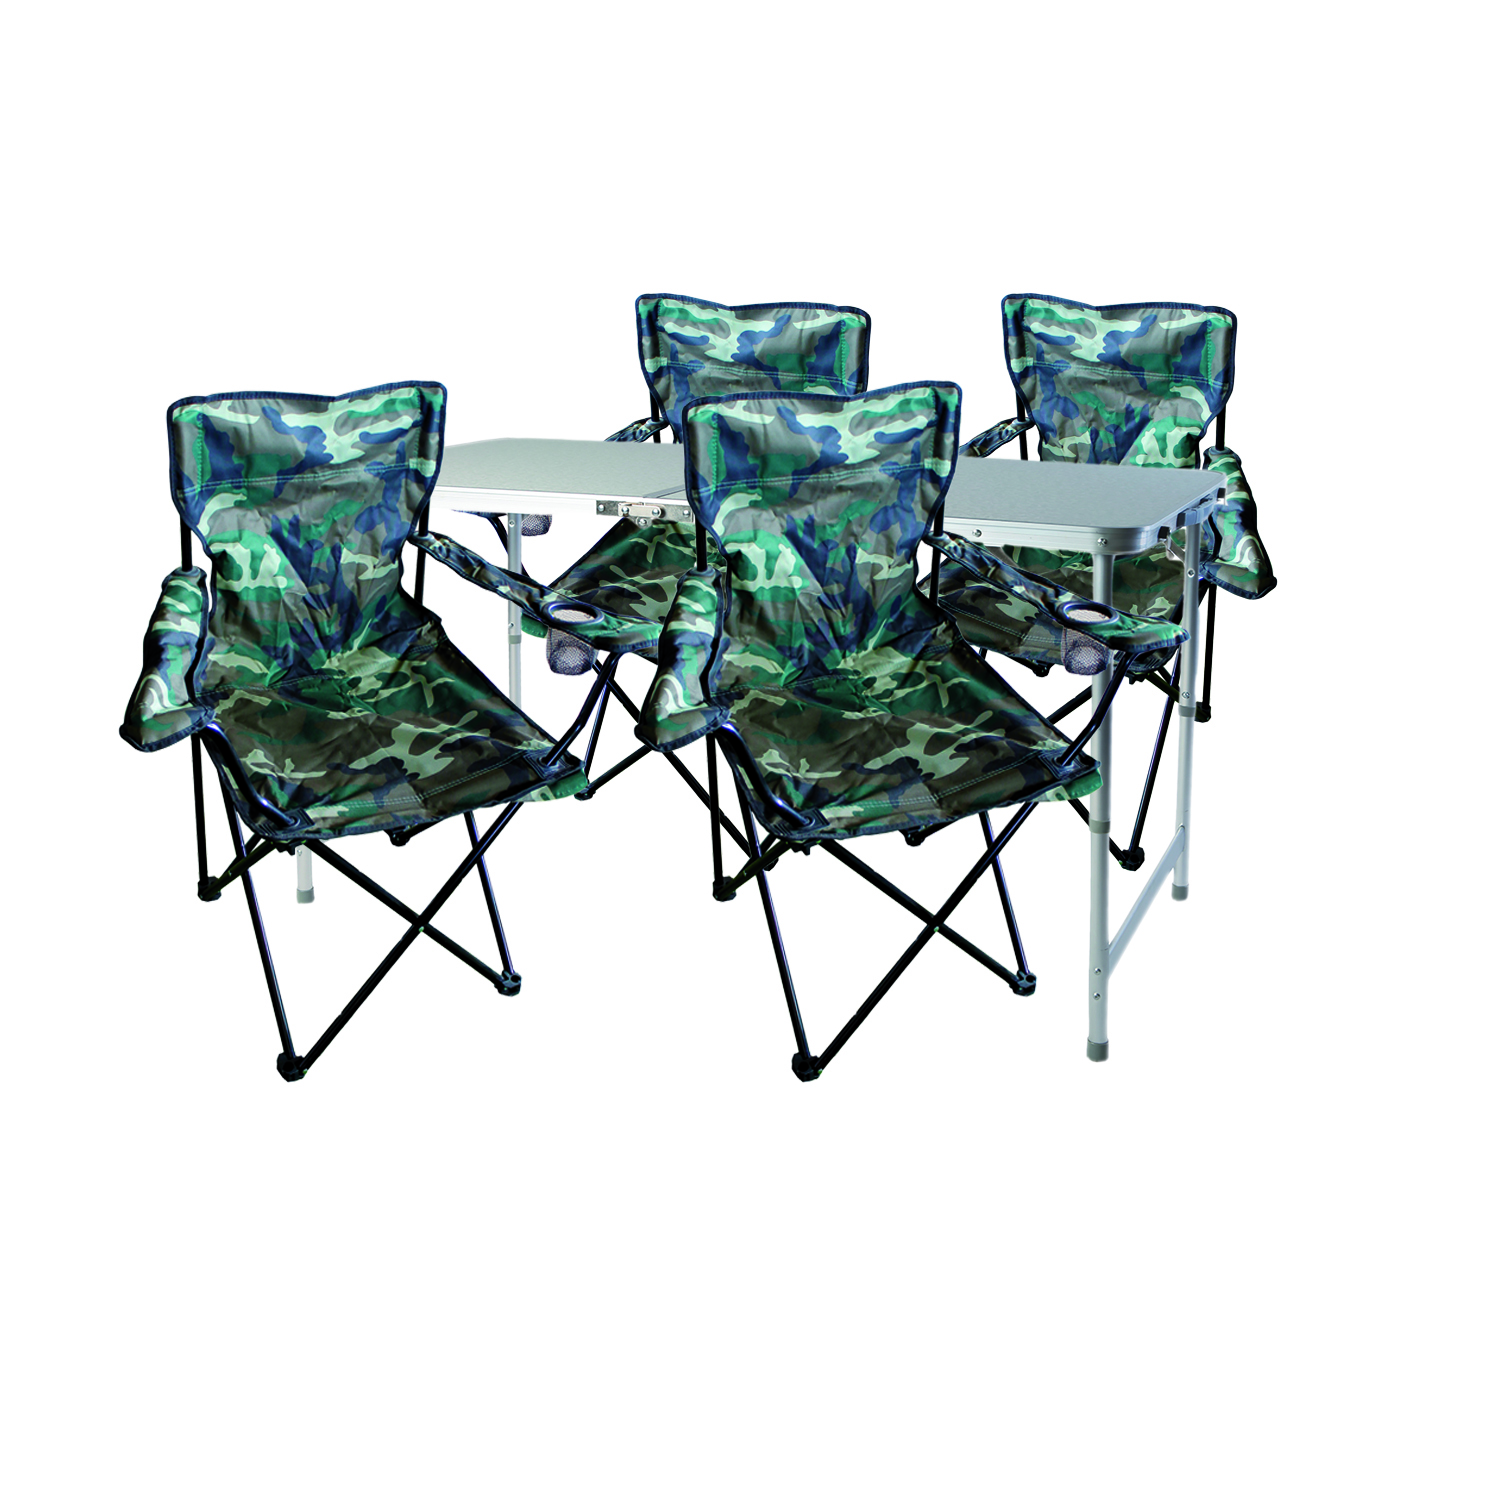 5 teiliges campingm bel set camouflage garten campingm bel. Black Bedroom Furniture Sets. Home Design Ideas